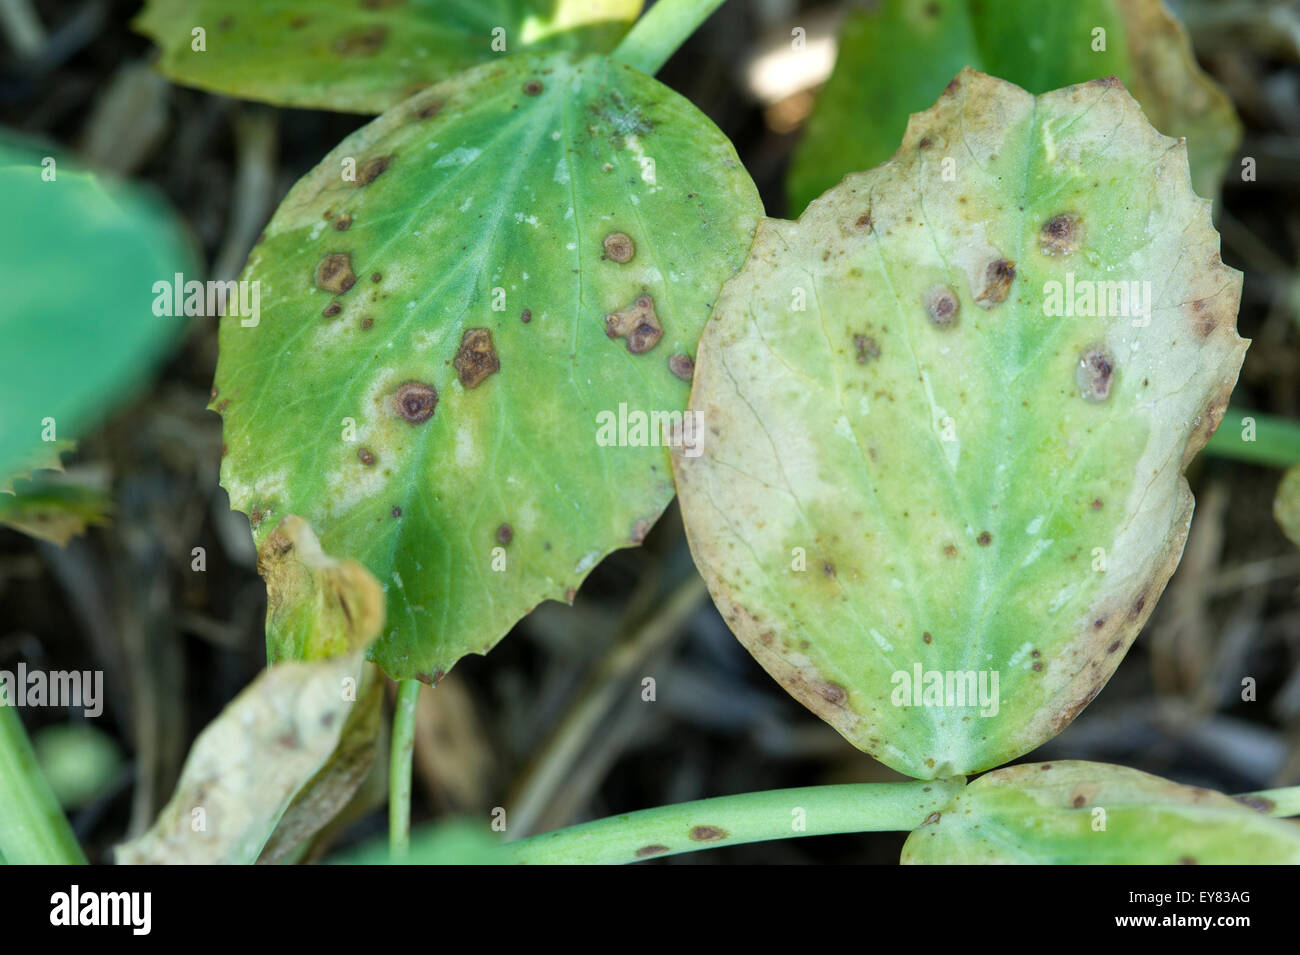 Leaf and stem blight on peas - Stock Image